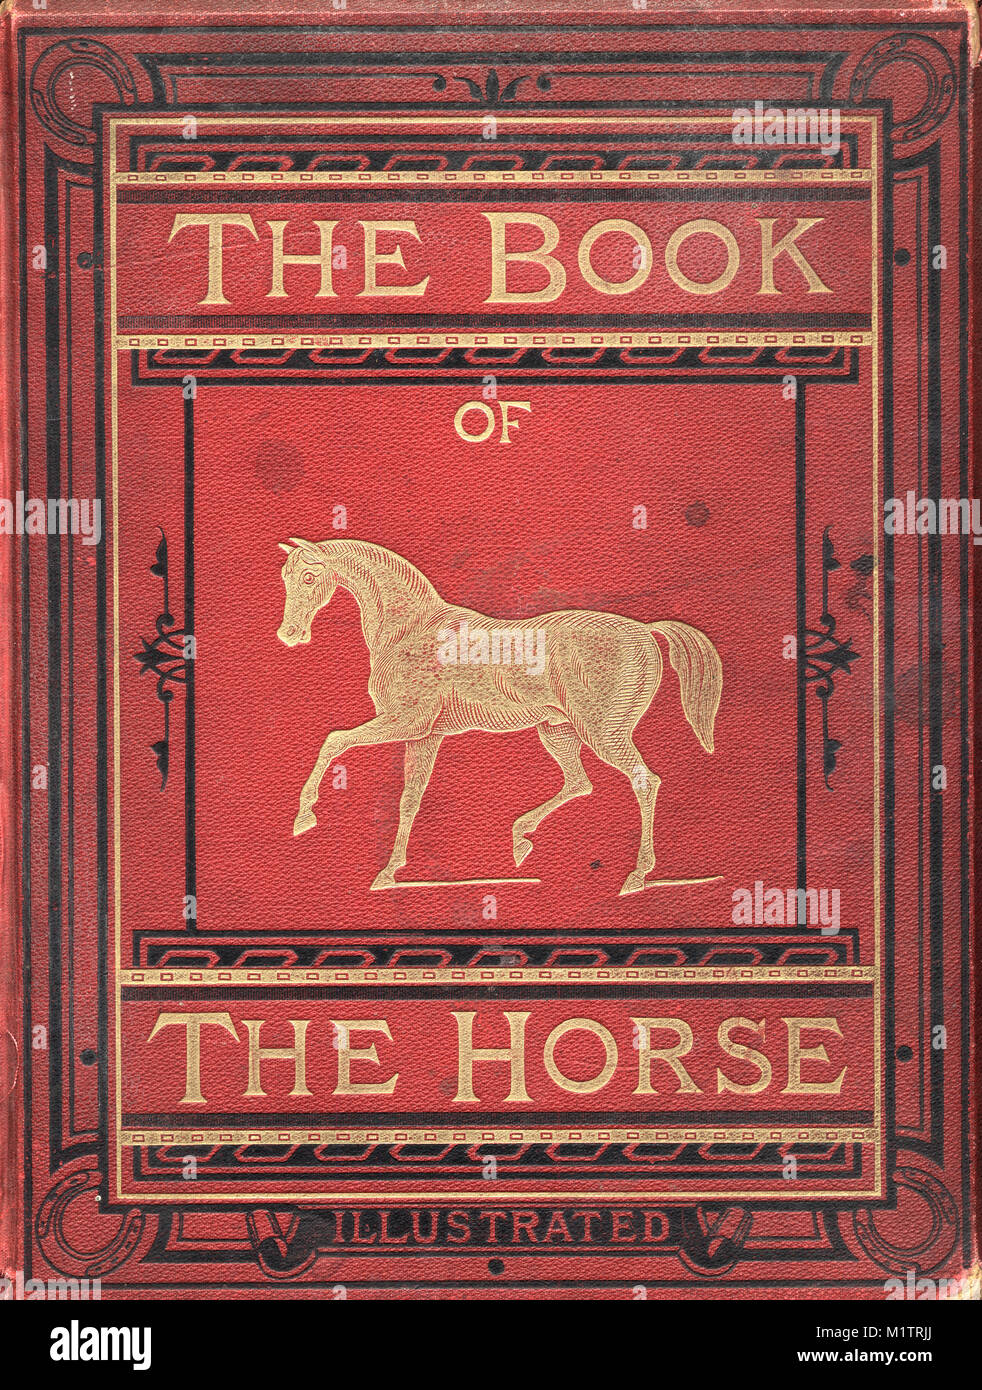 Victorian book cover The Book of the Horse - Stock Image